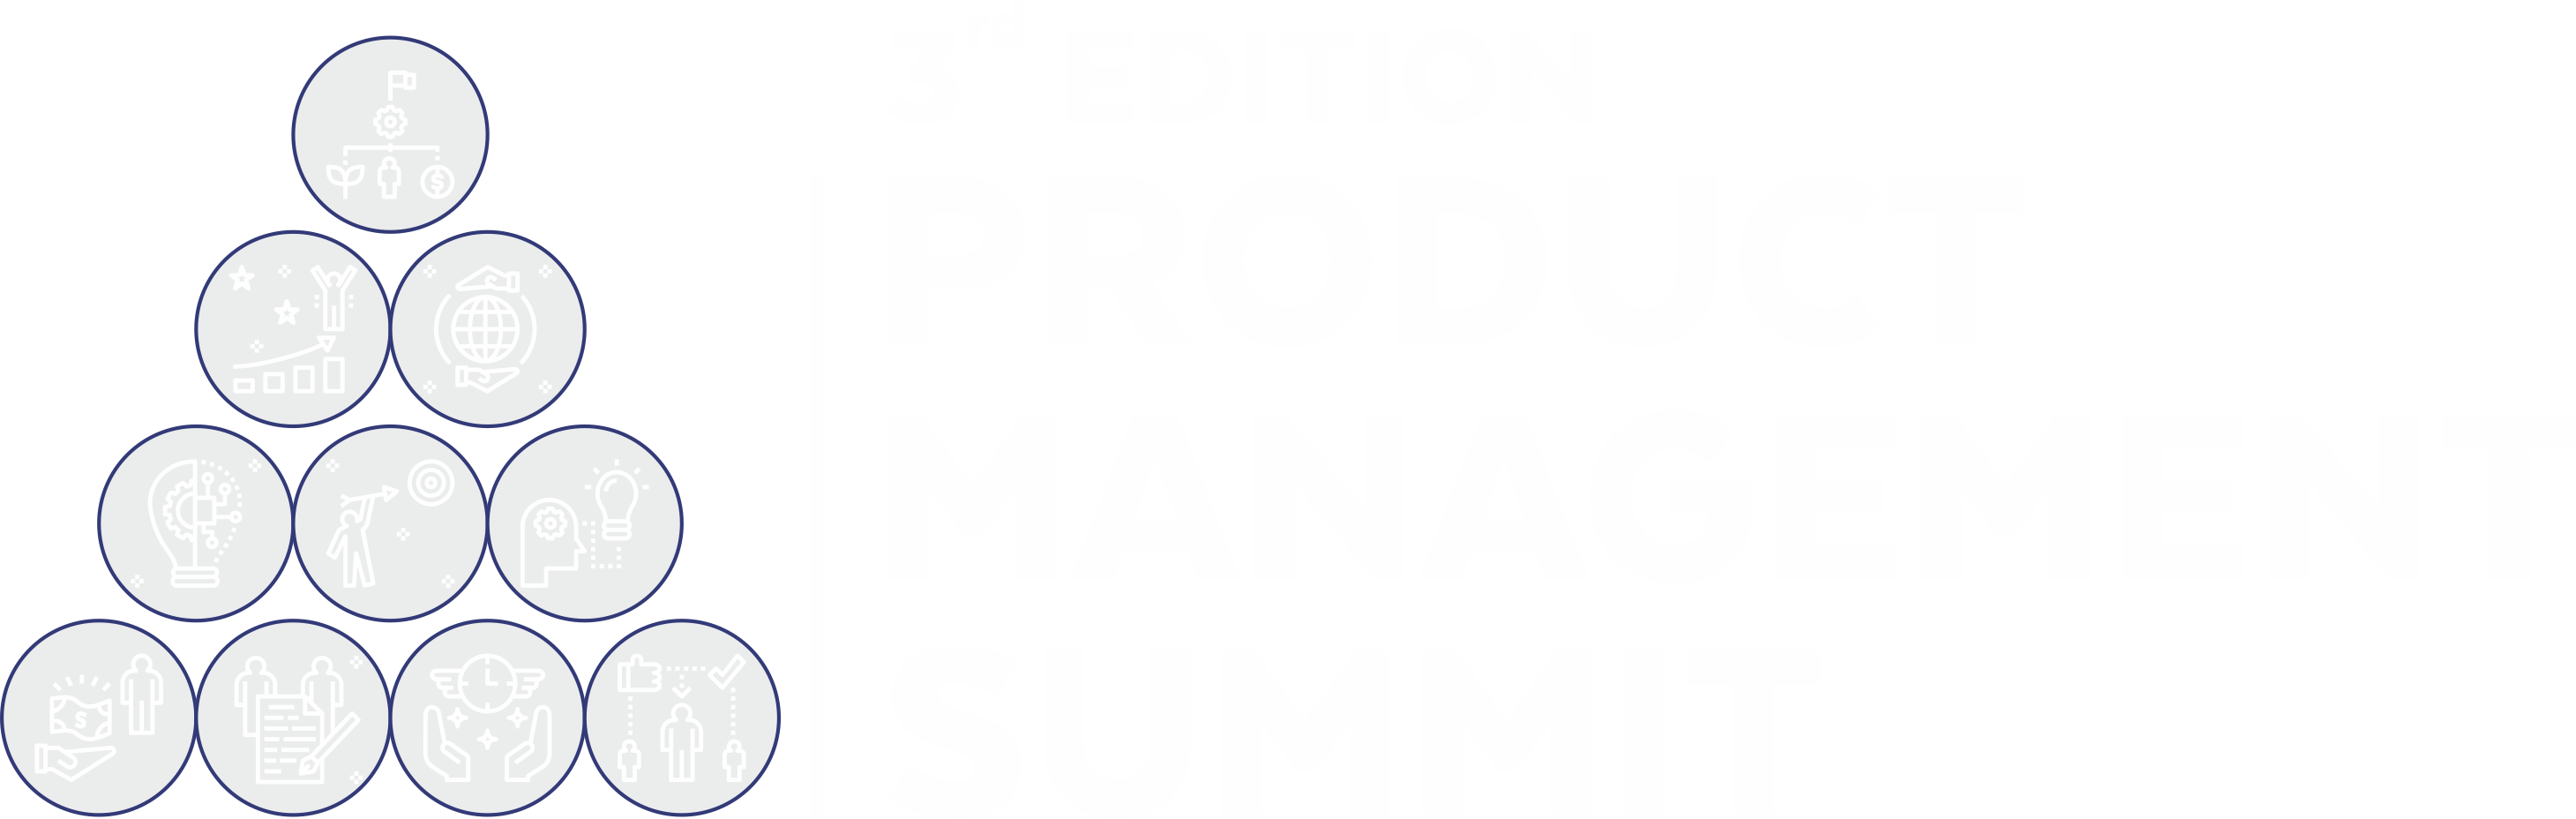 3rd Edition Product Management Summit